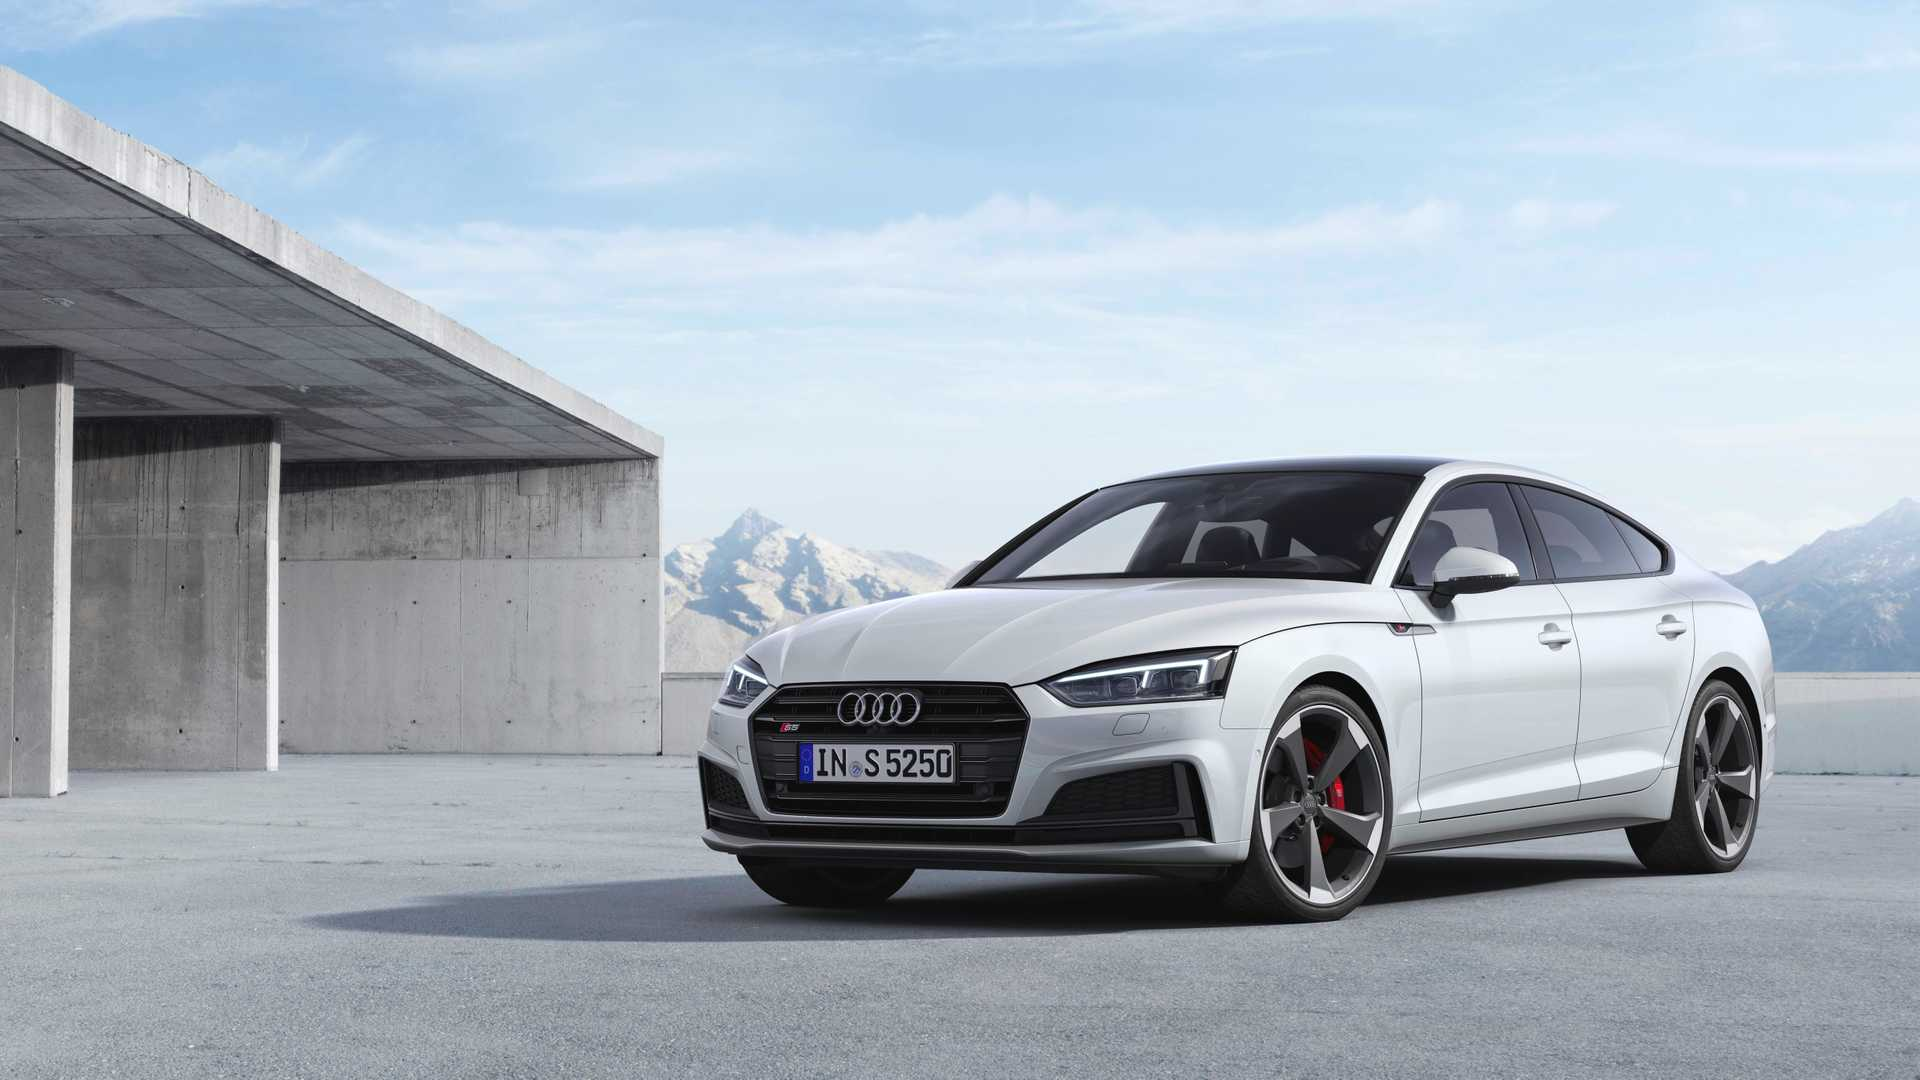 87 All New 2020 Audi S5 Research New